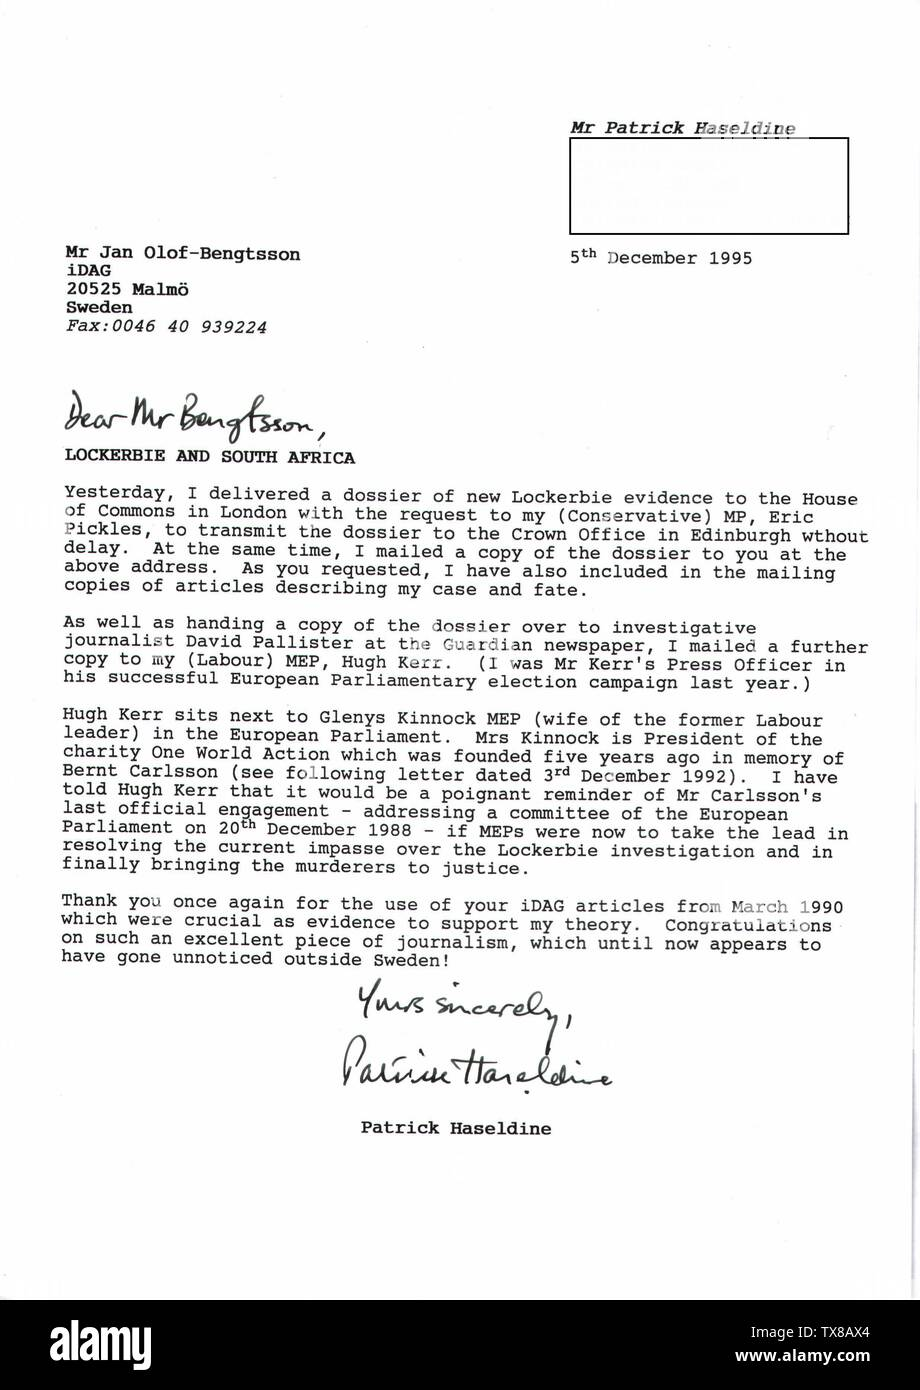 'English: On 5 December 1995, I sent this letter to Swedish journalist Jan-Olof Bengtsson together with a copy of my dossier of new evidence to confirm South Africa's involvement in the Lockerbie bombing. Much of the evidence in the dossier was based upon three articles Bengtsson had written in the iDAG newspaper in March 1990 concerning Pan Am Flight 103's most prominent victim: UN Commissioner for Namibia, Bernt Carlsson.PJHaseldine (talk) 14:19, 24 June 2008 (UTC); 24 June 2008 (original upload date); Transferred from en.wikipedia to Commons.; PJHaseldine at English Wikipedia; ' - Stock Image